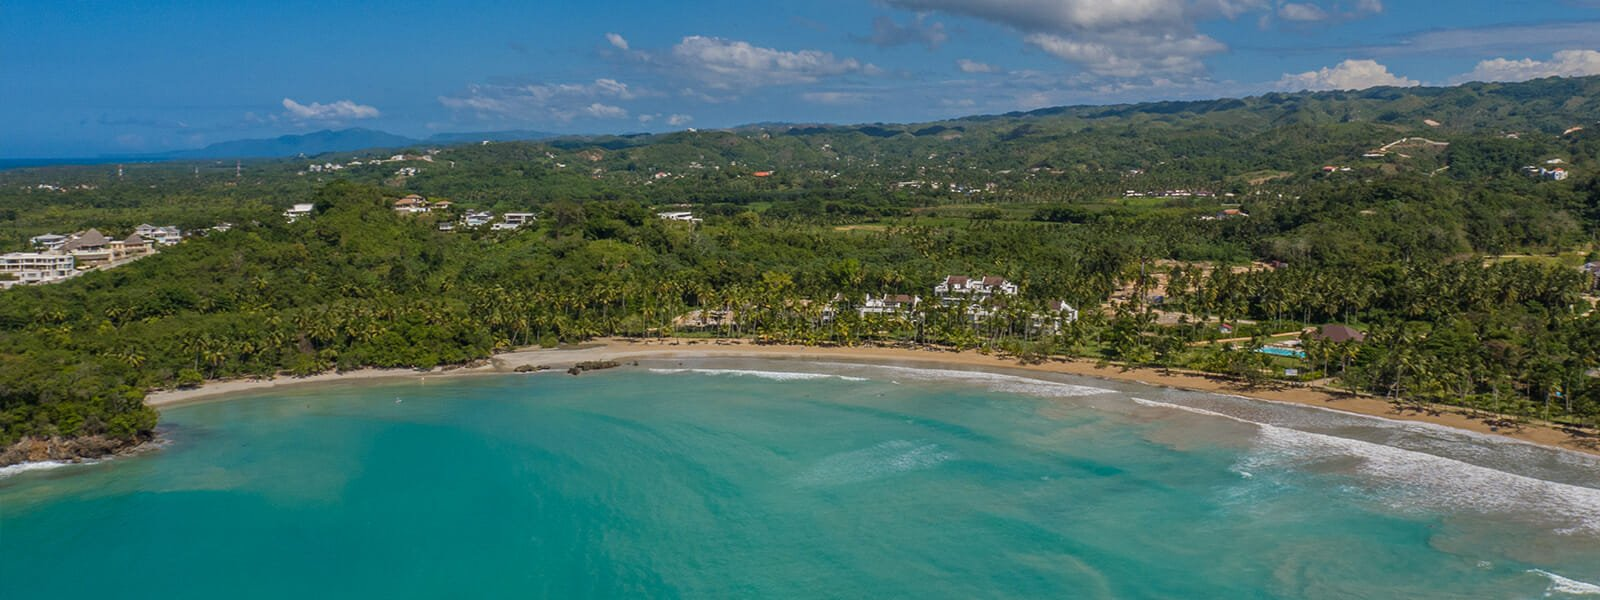 Playa Bonita | Dominican Republic Real Estate | Homes in Dominican Rep